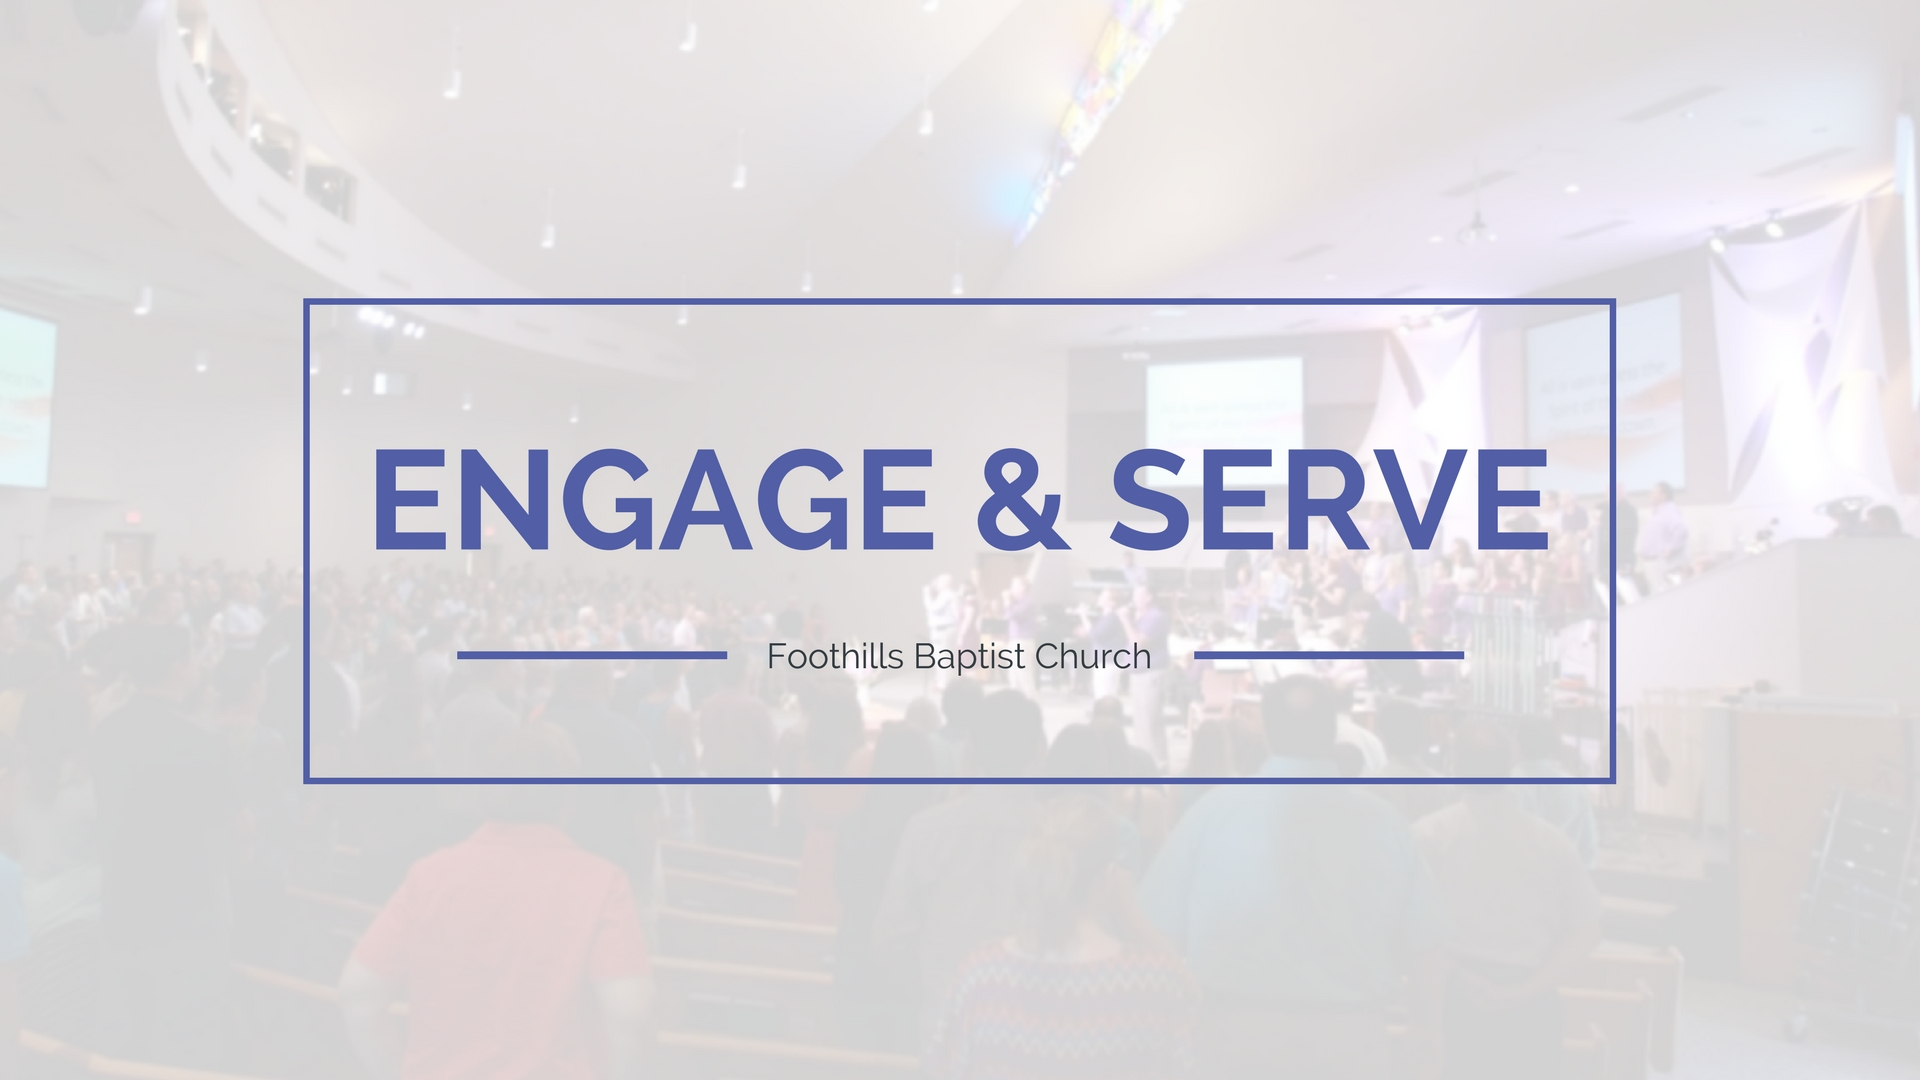 Engage & Serve featured image